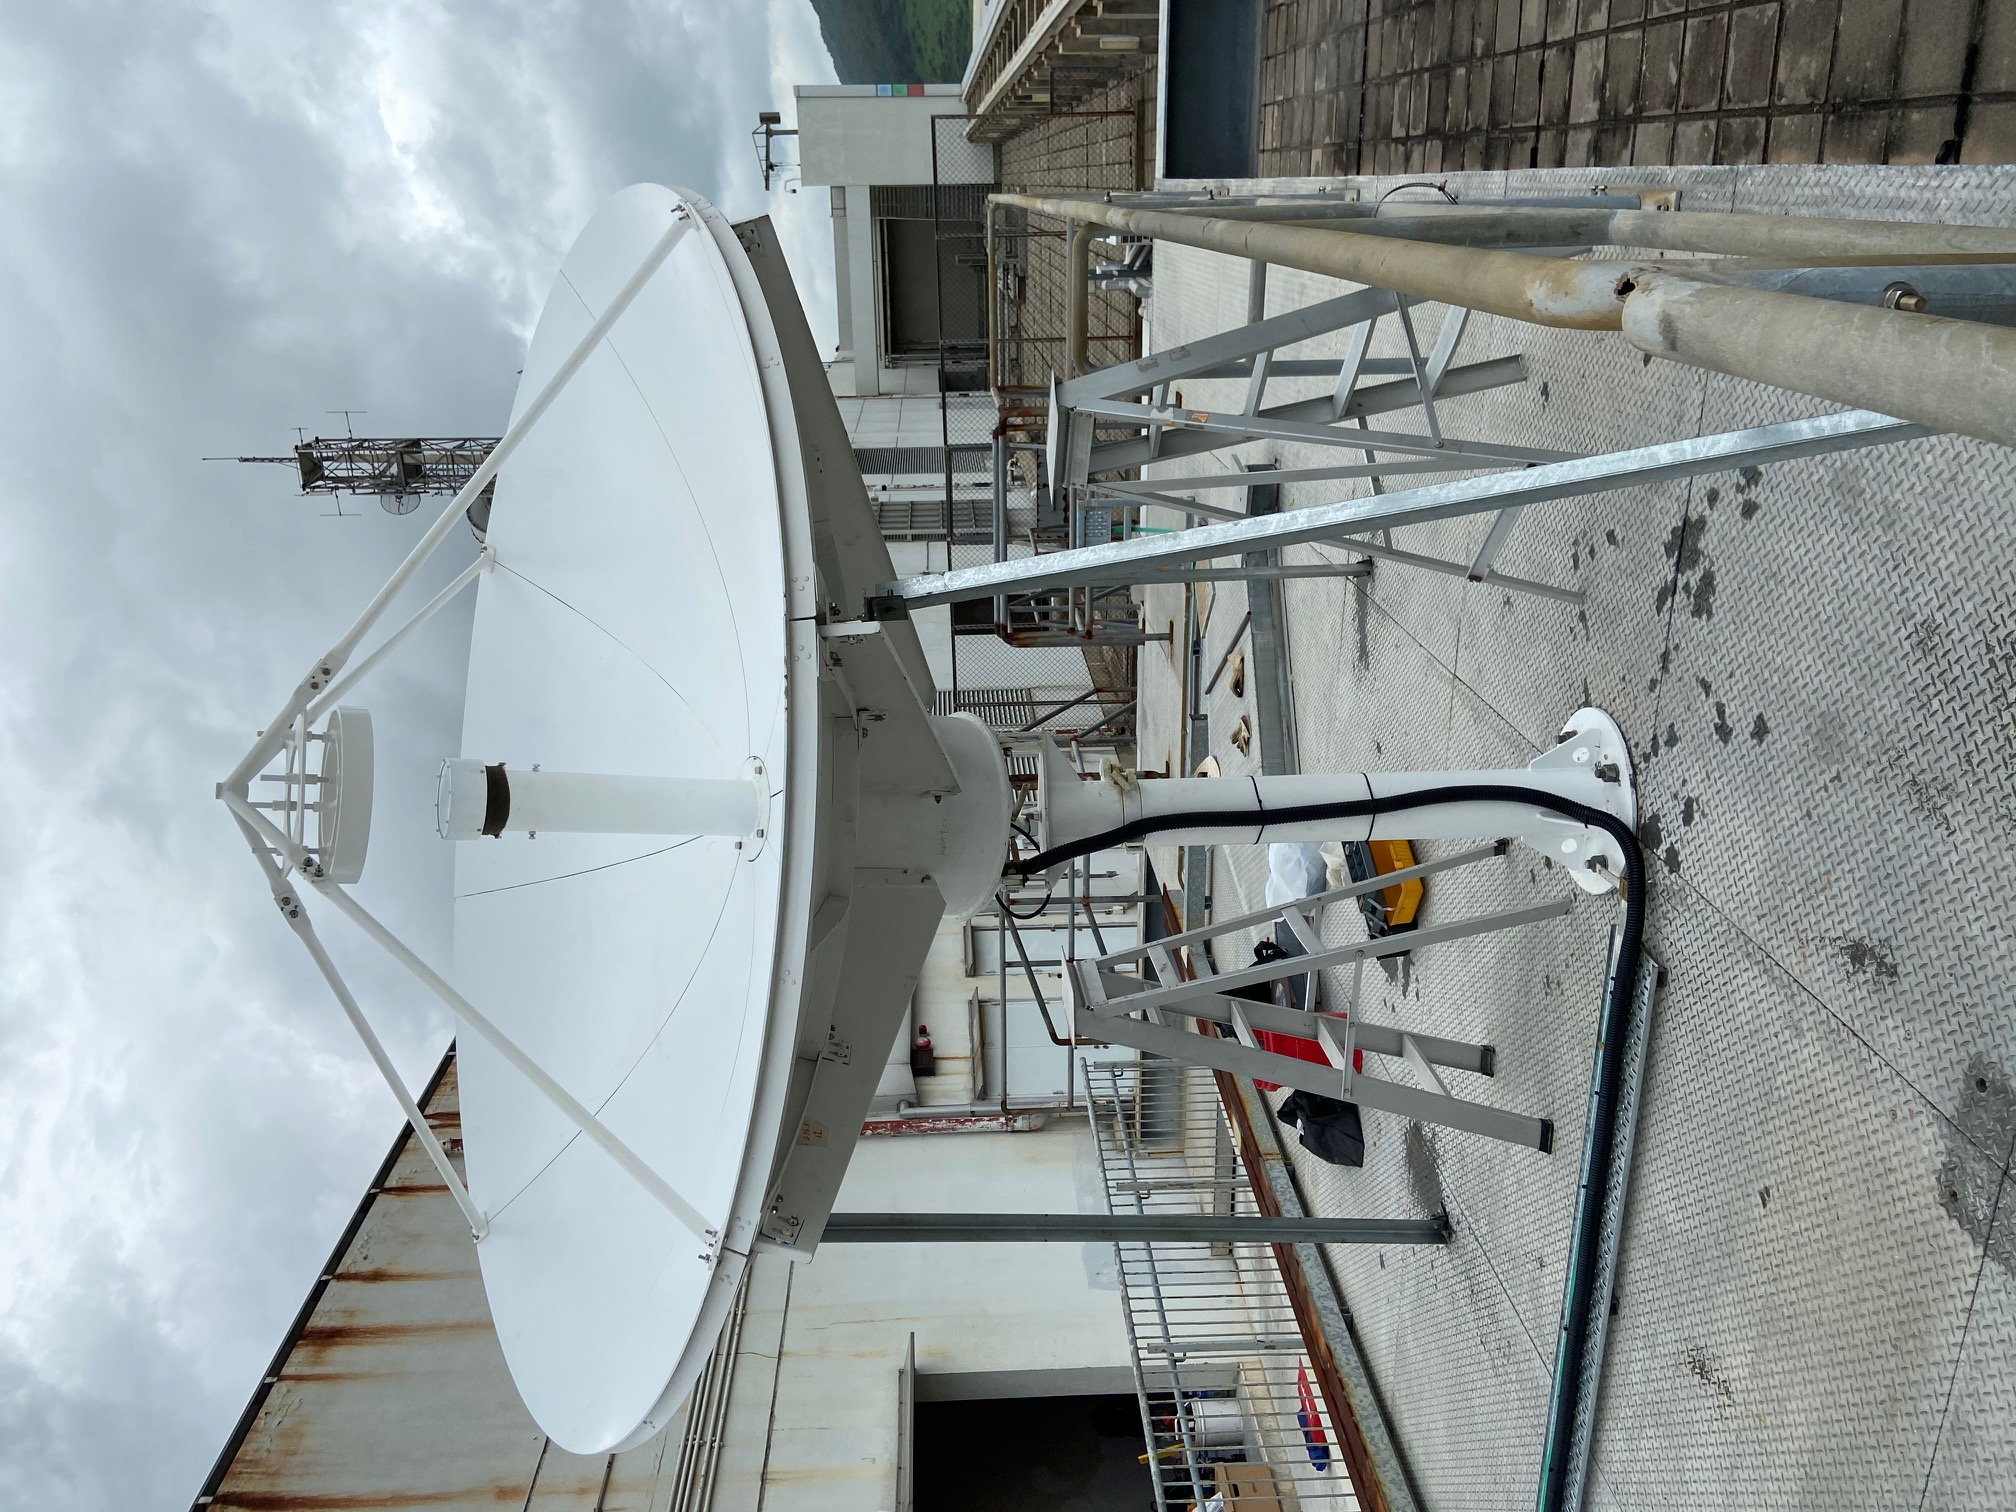 bandpass filter - success stories - install completed - AsiaSat